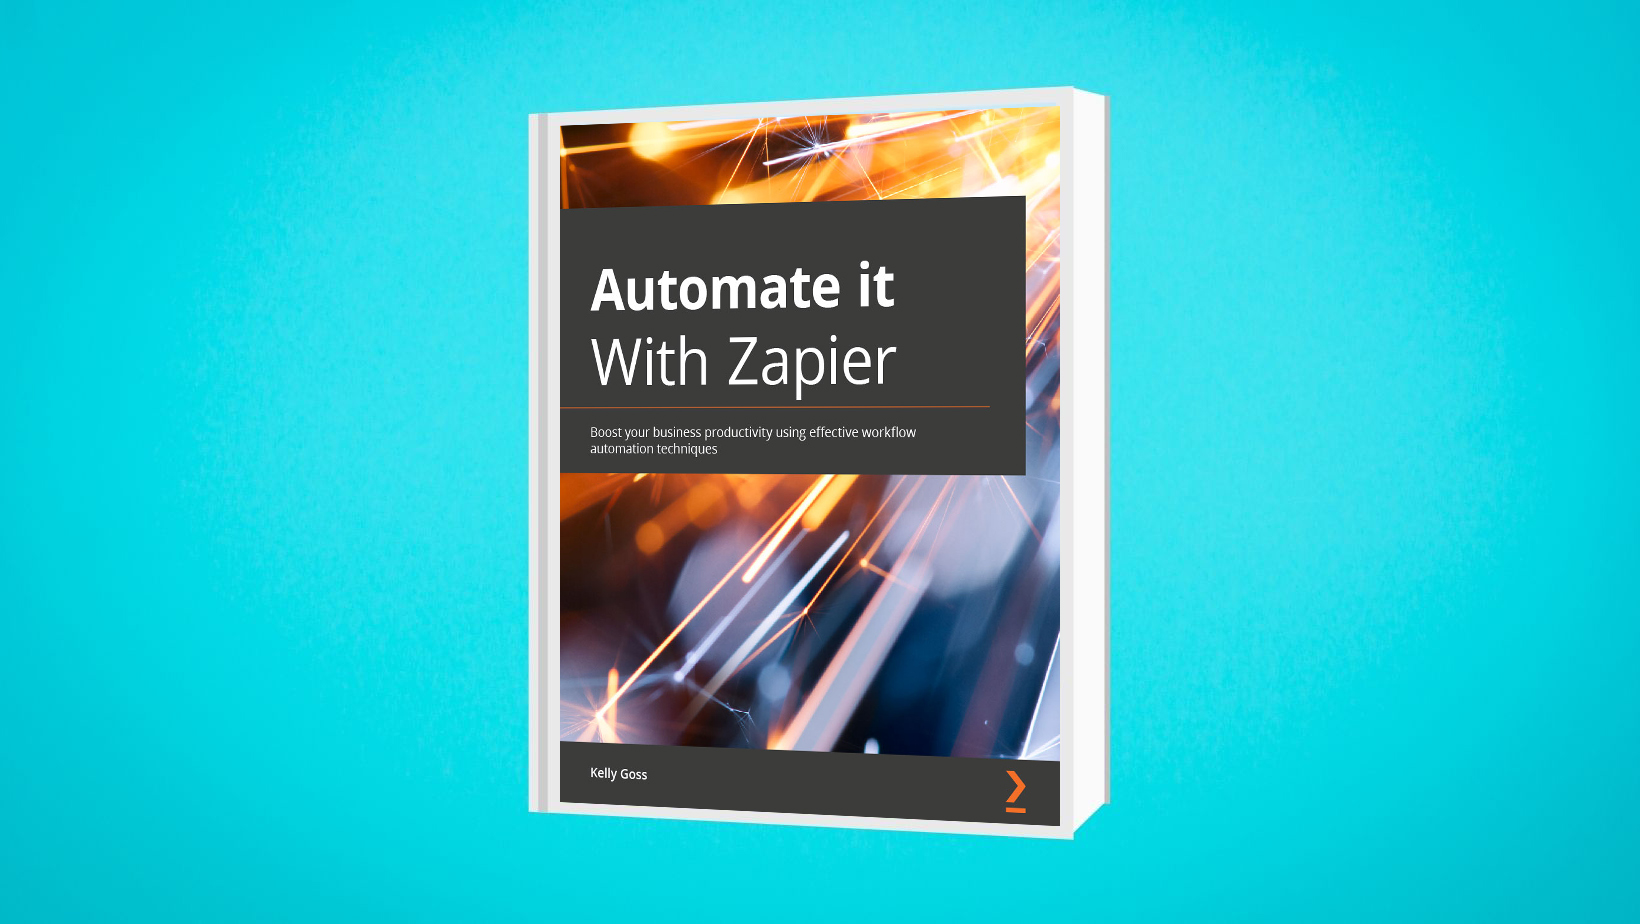 Cover of the book 'Automate it With Zapier' with byline 'Boost your business productivity using effective workflow automation techniques' by author Kelly Goss.